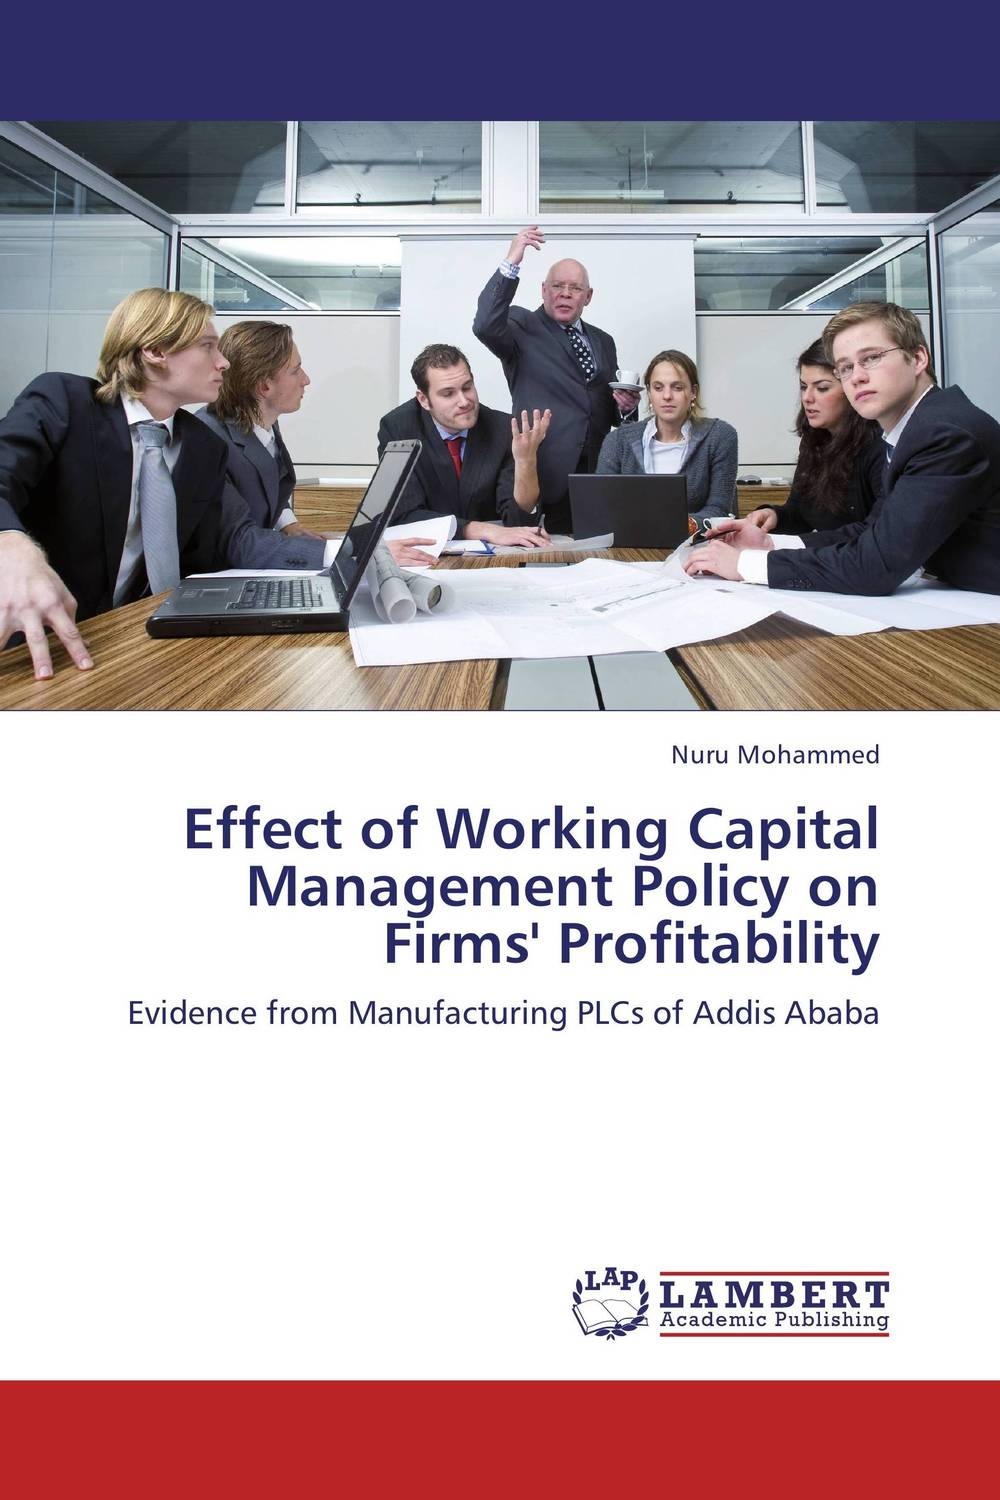 Effect of Working Capital Management Policy on Firms' Profitability james sagner working capital management applications and case studies